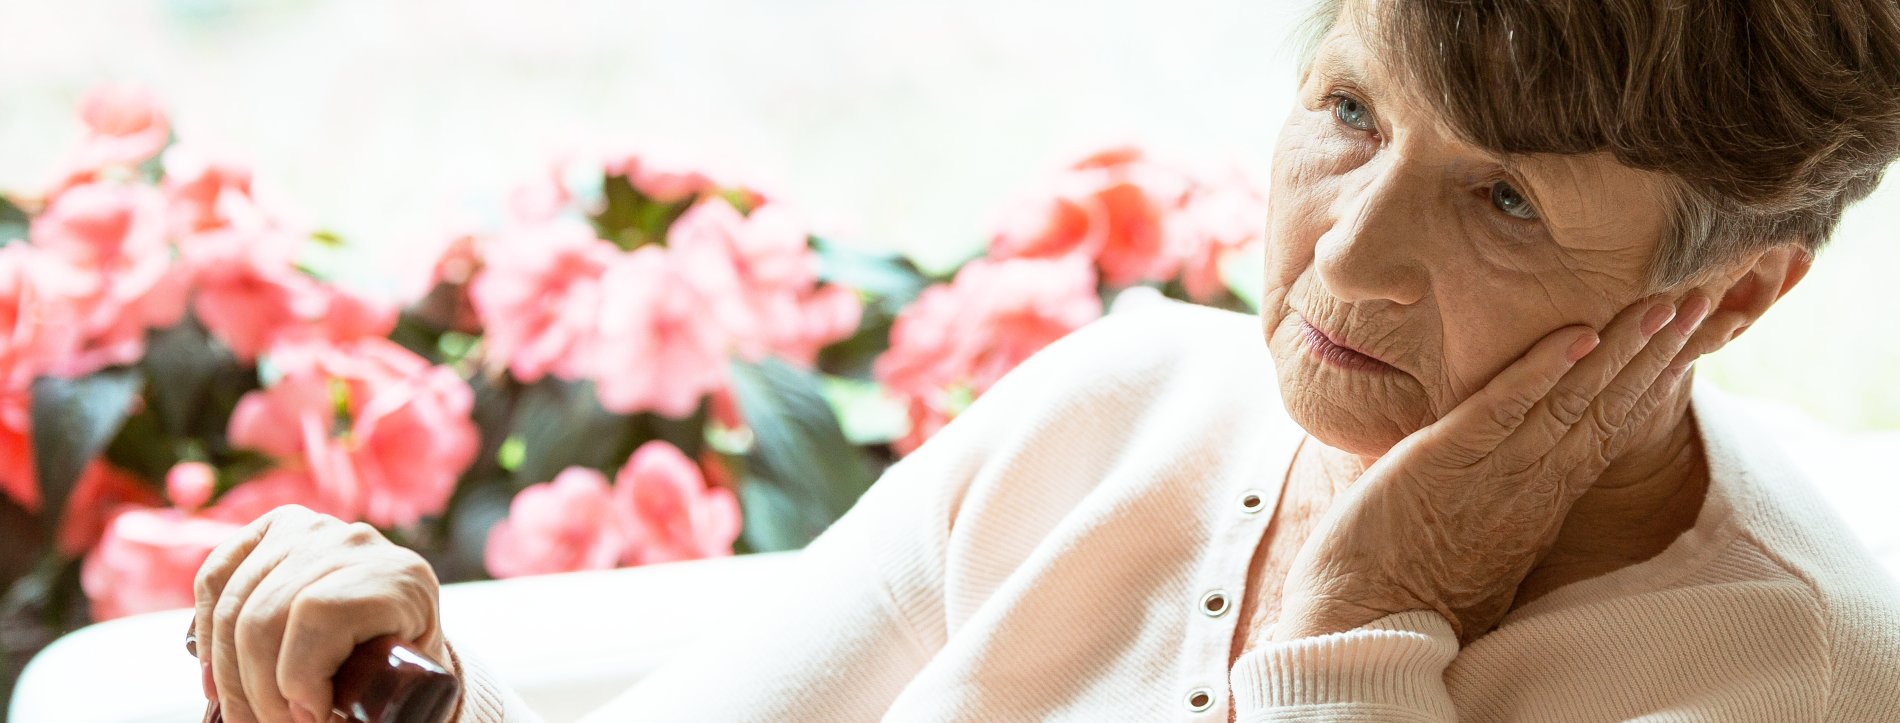 An open science collection of data from persons at-risk of developing Alzheimer's Disease (AD) will help researchers study the pre-symptomatic phase of the disease and accelerate the develop of new therapies that could slow down the disease process.